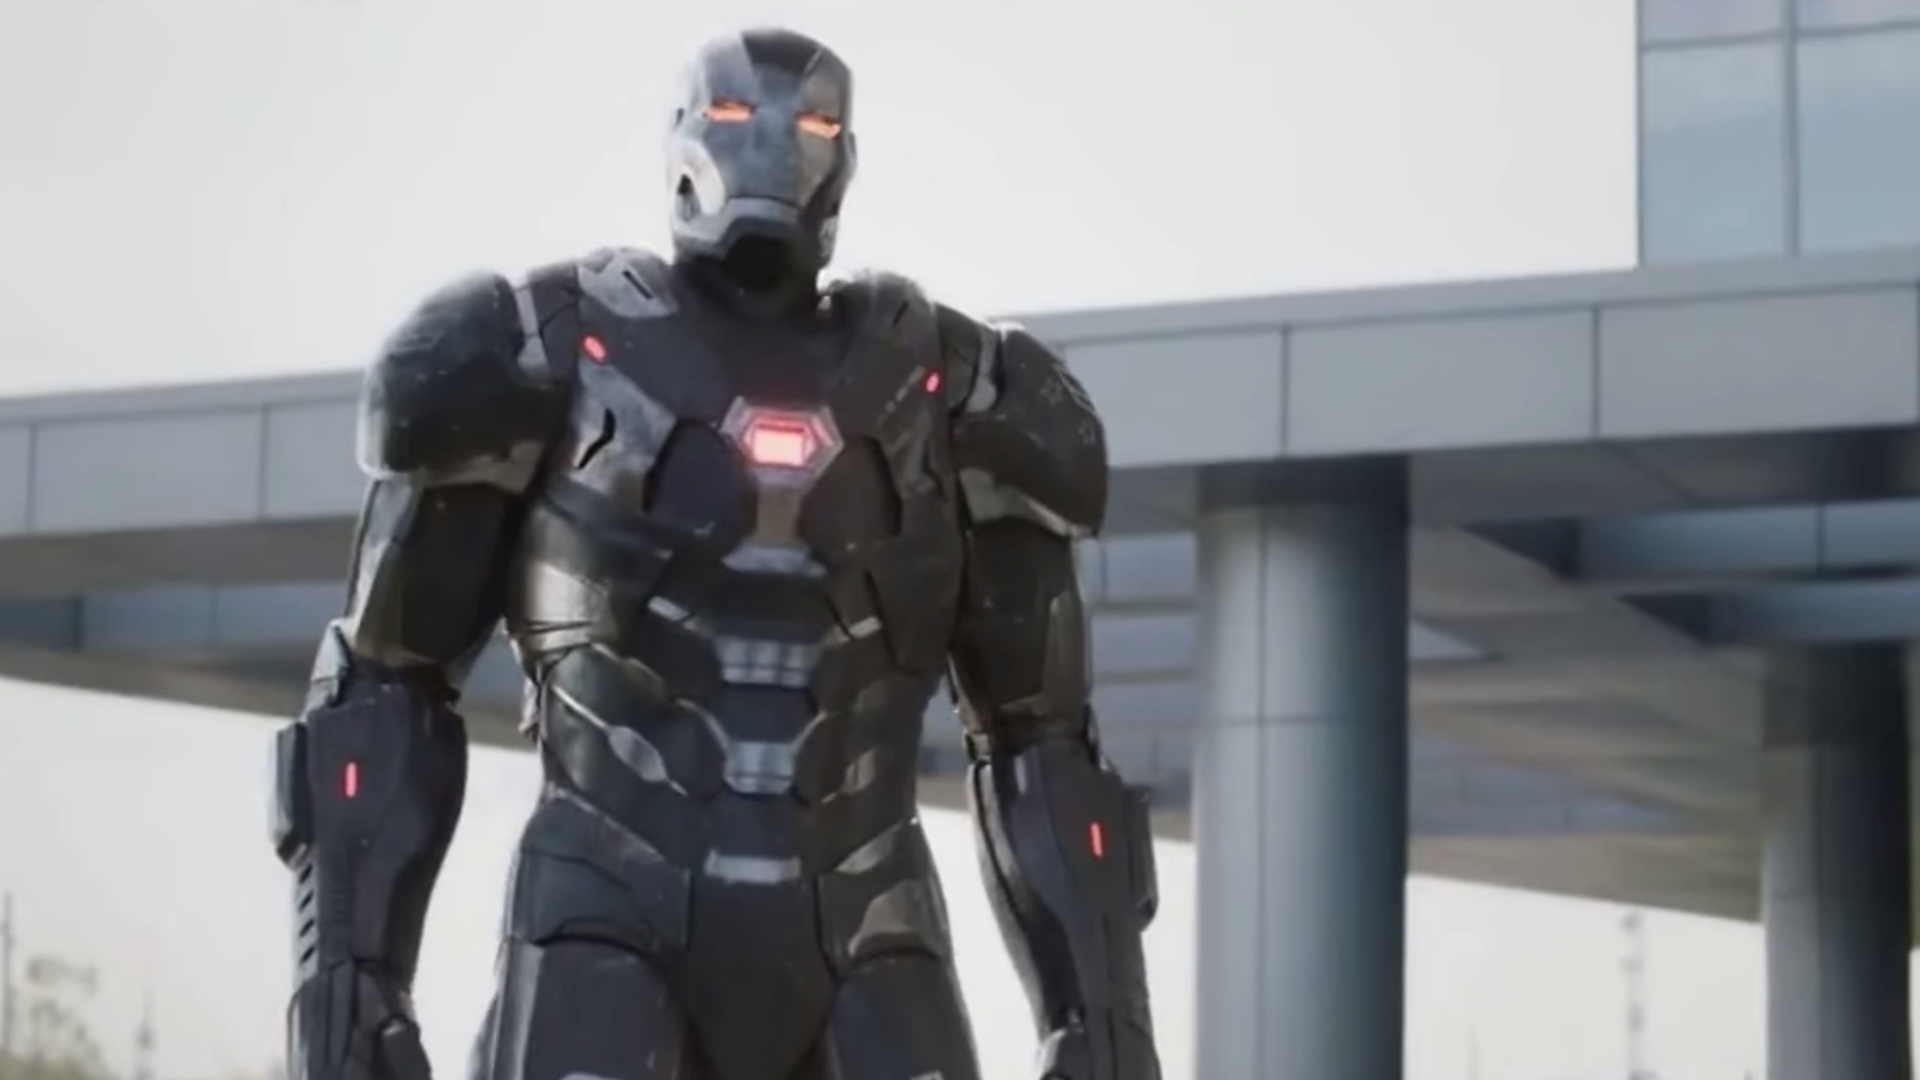 totally-awesome-new-tv-spot-for-avengers-endgame-its-time-to-live-up-to-our-name-social.jpg